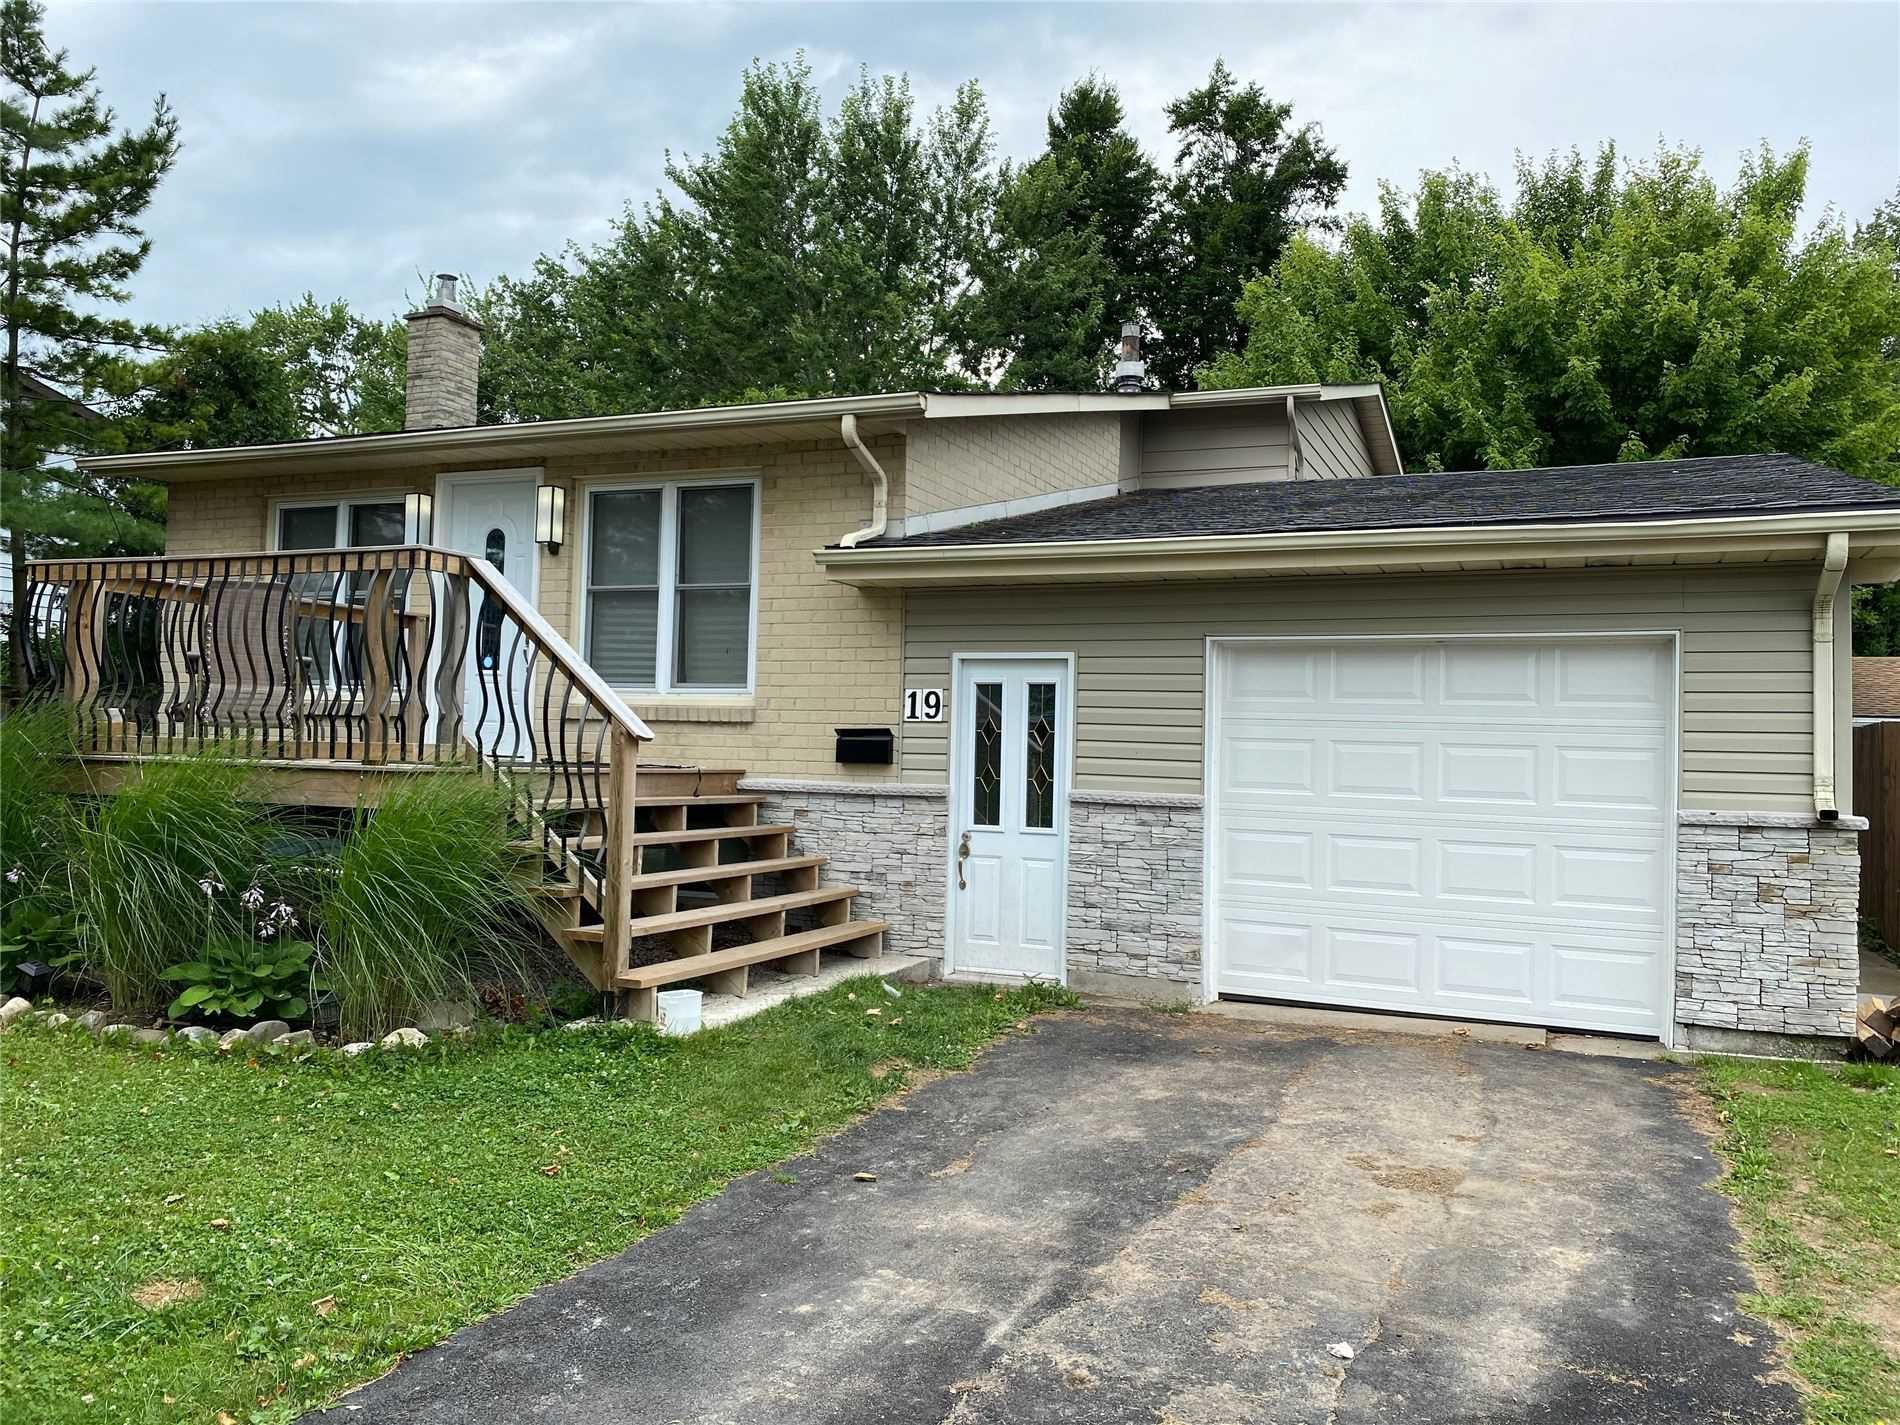 Main Photo: 19 Leaside Drive in Welland: House for rent